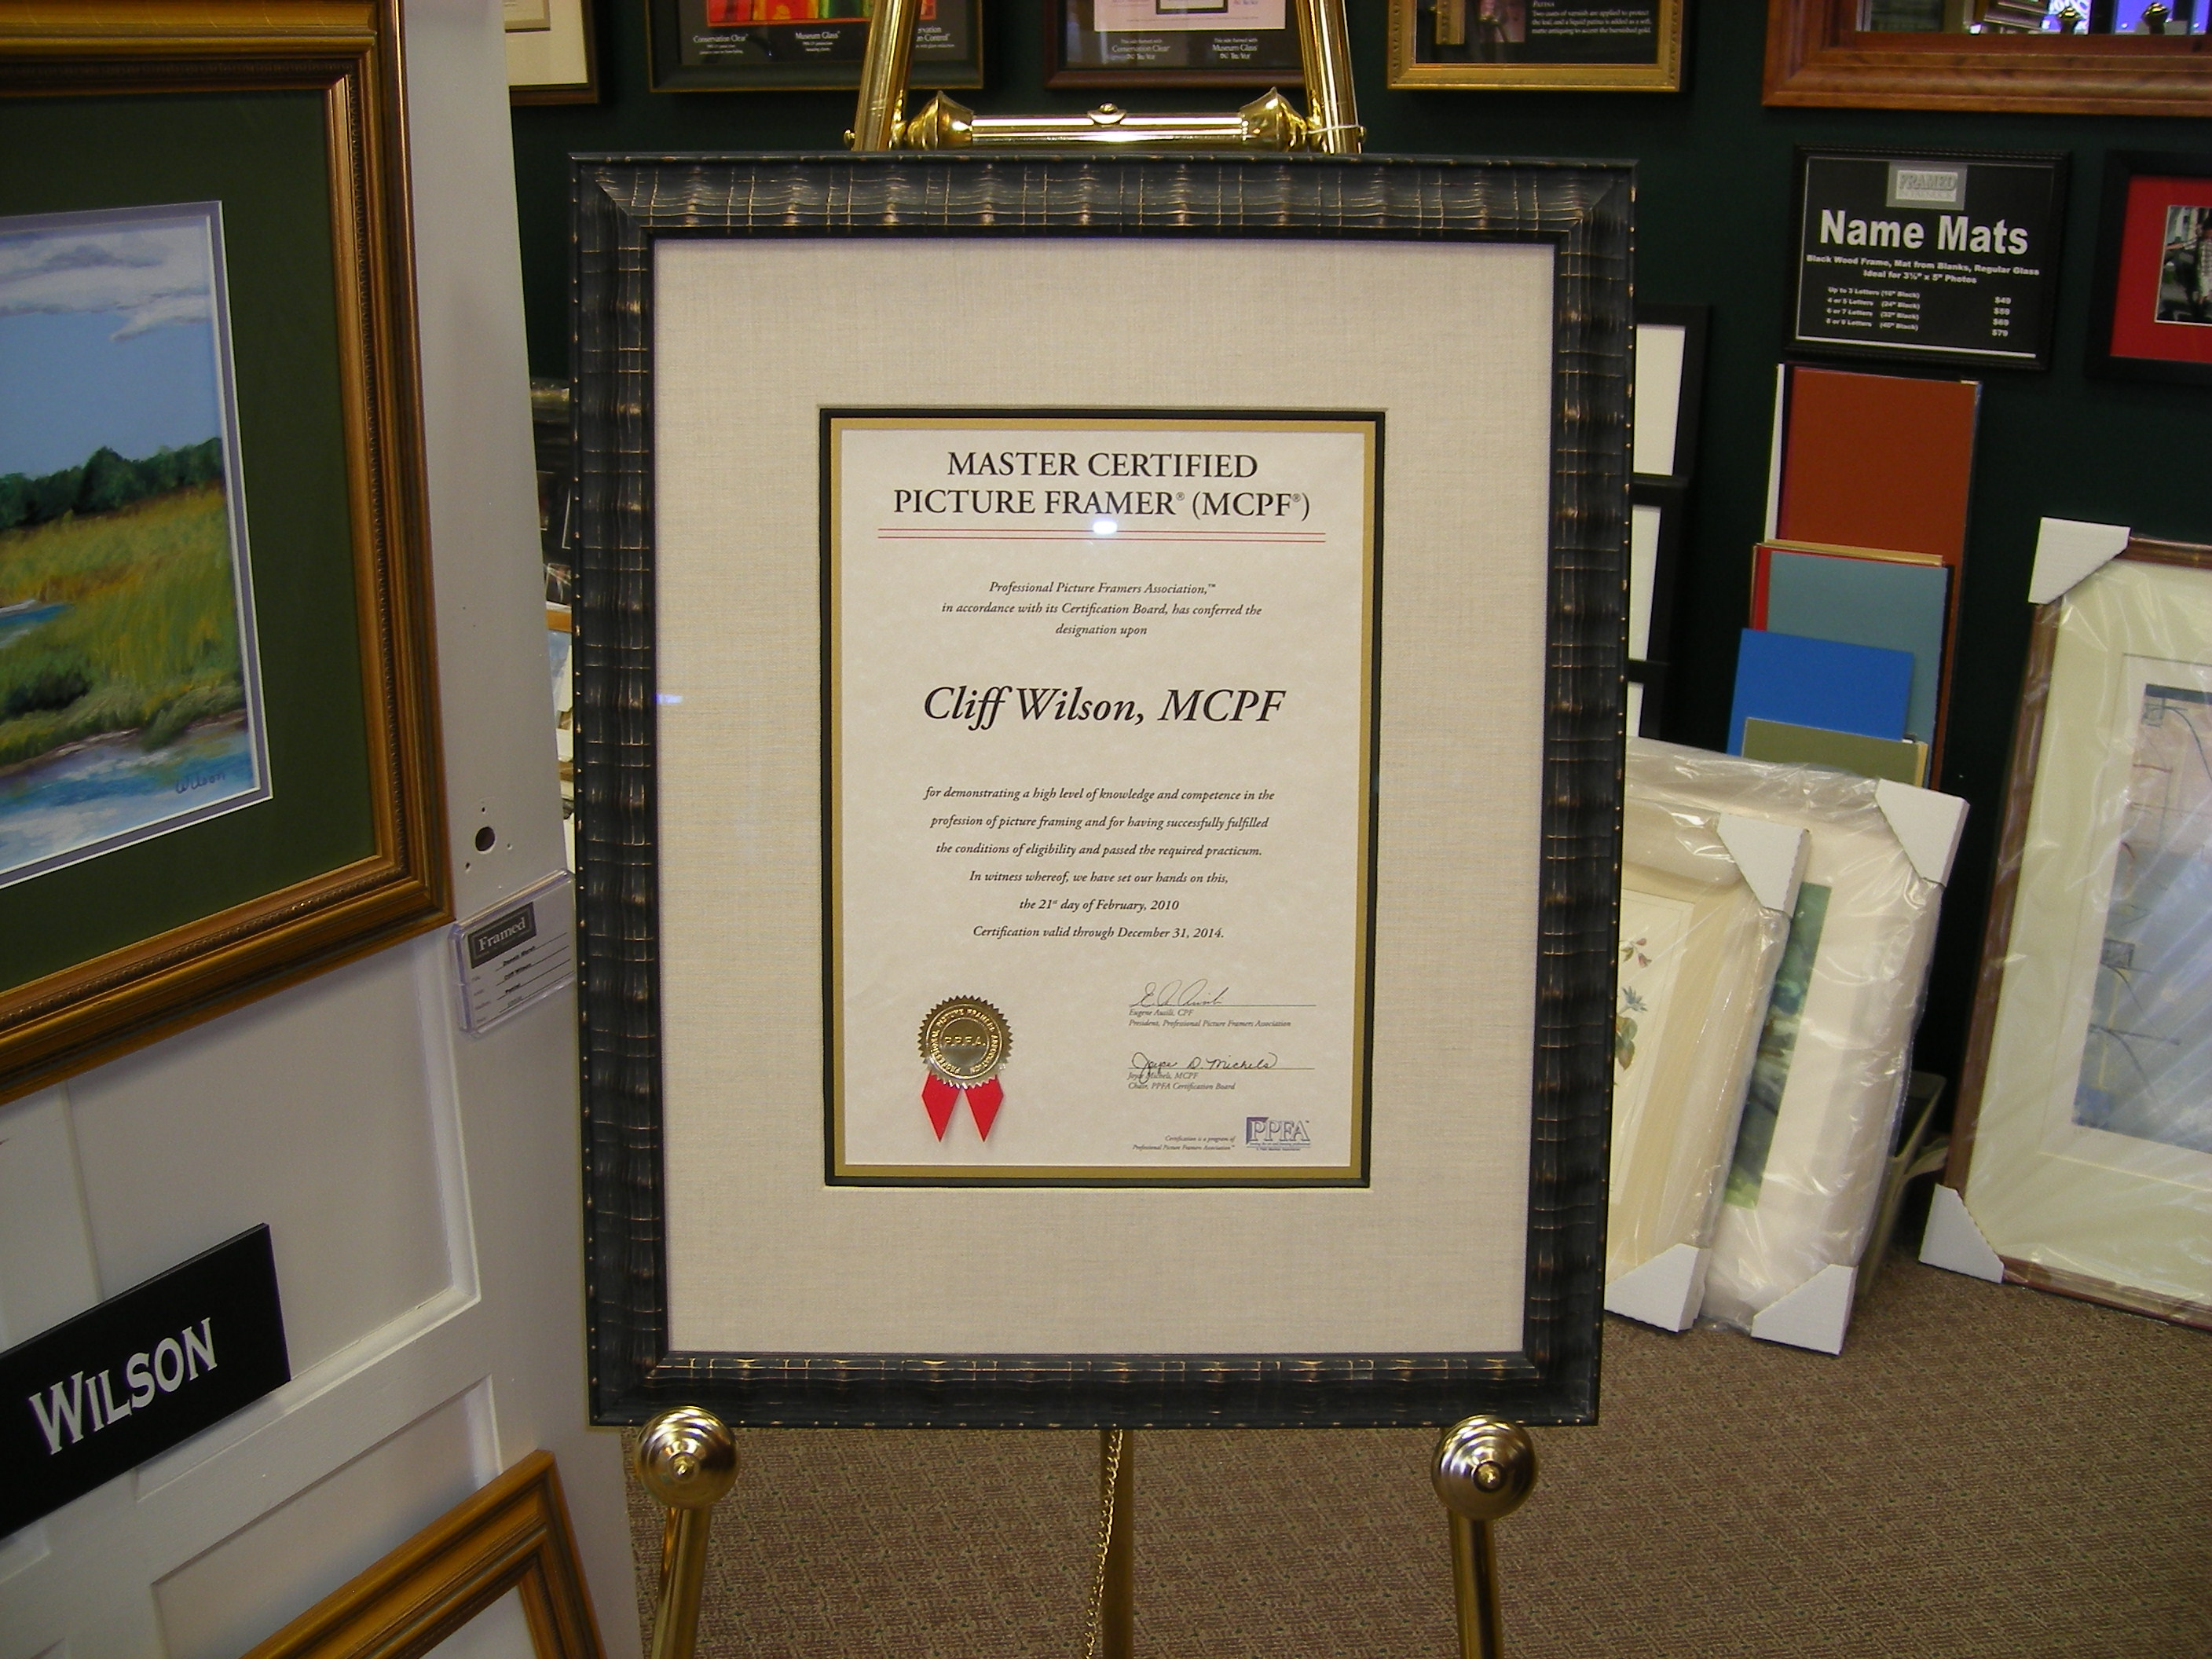 Framing tips framed in tatnuck master certified picture framer jeuxipadfo Image collections